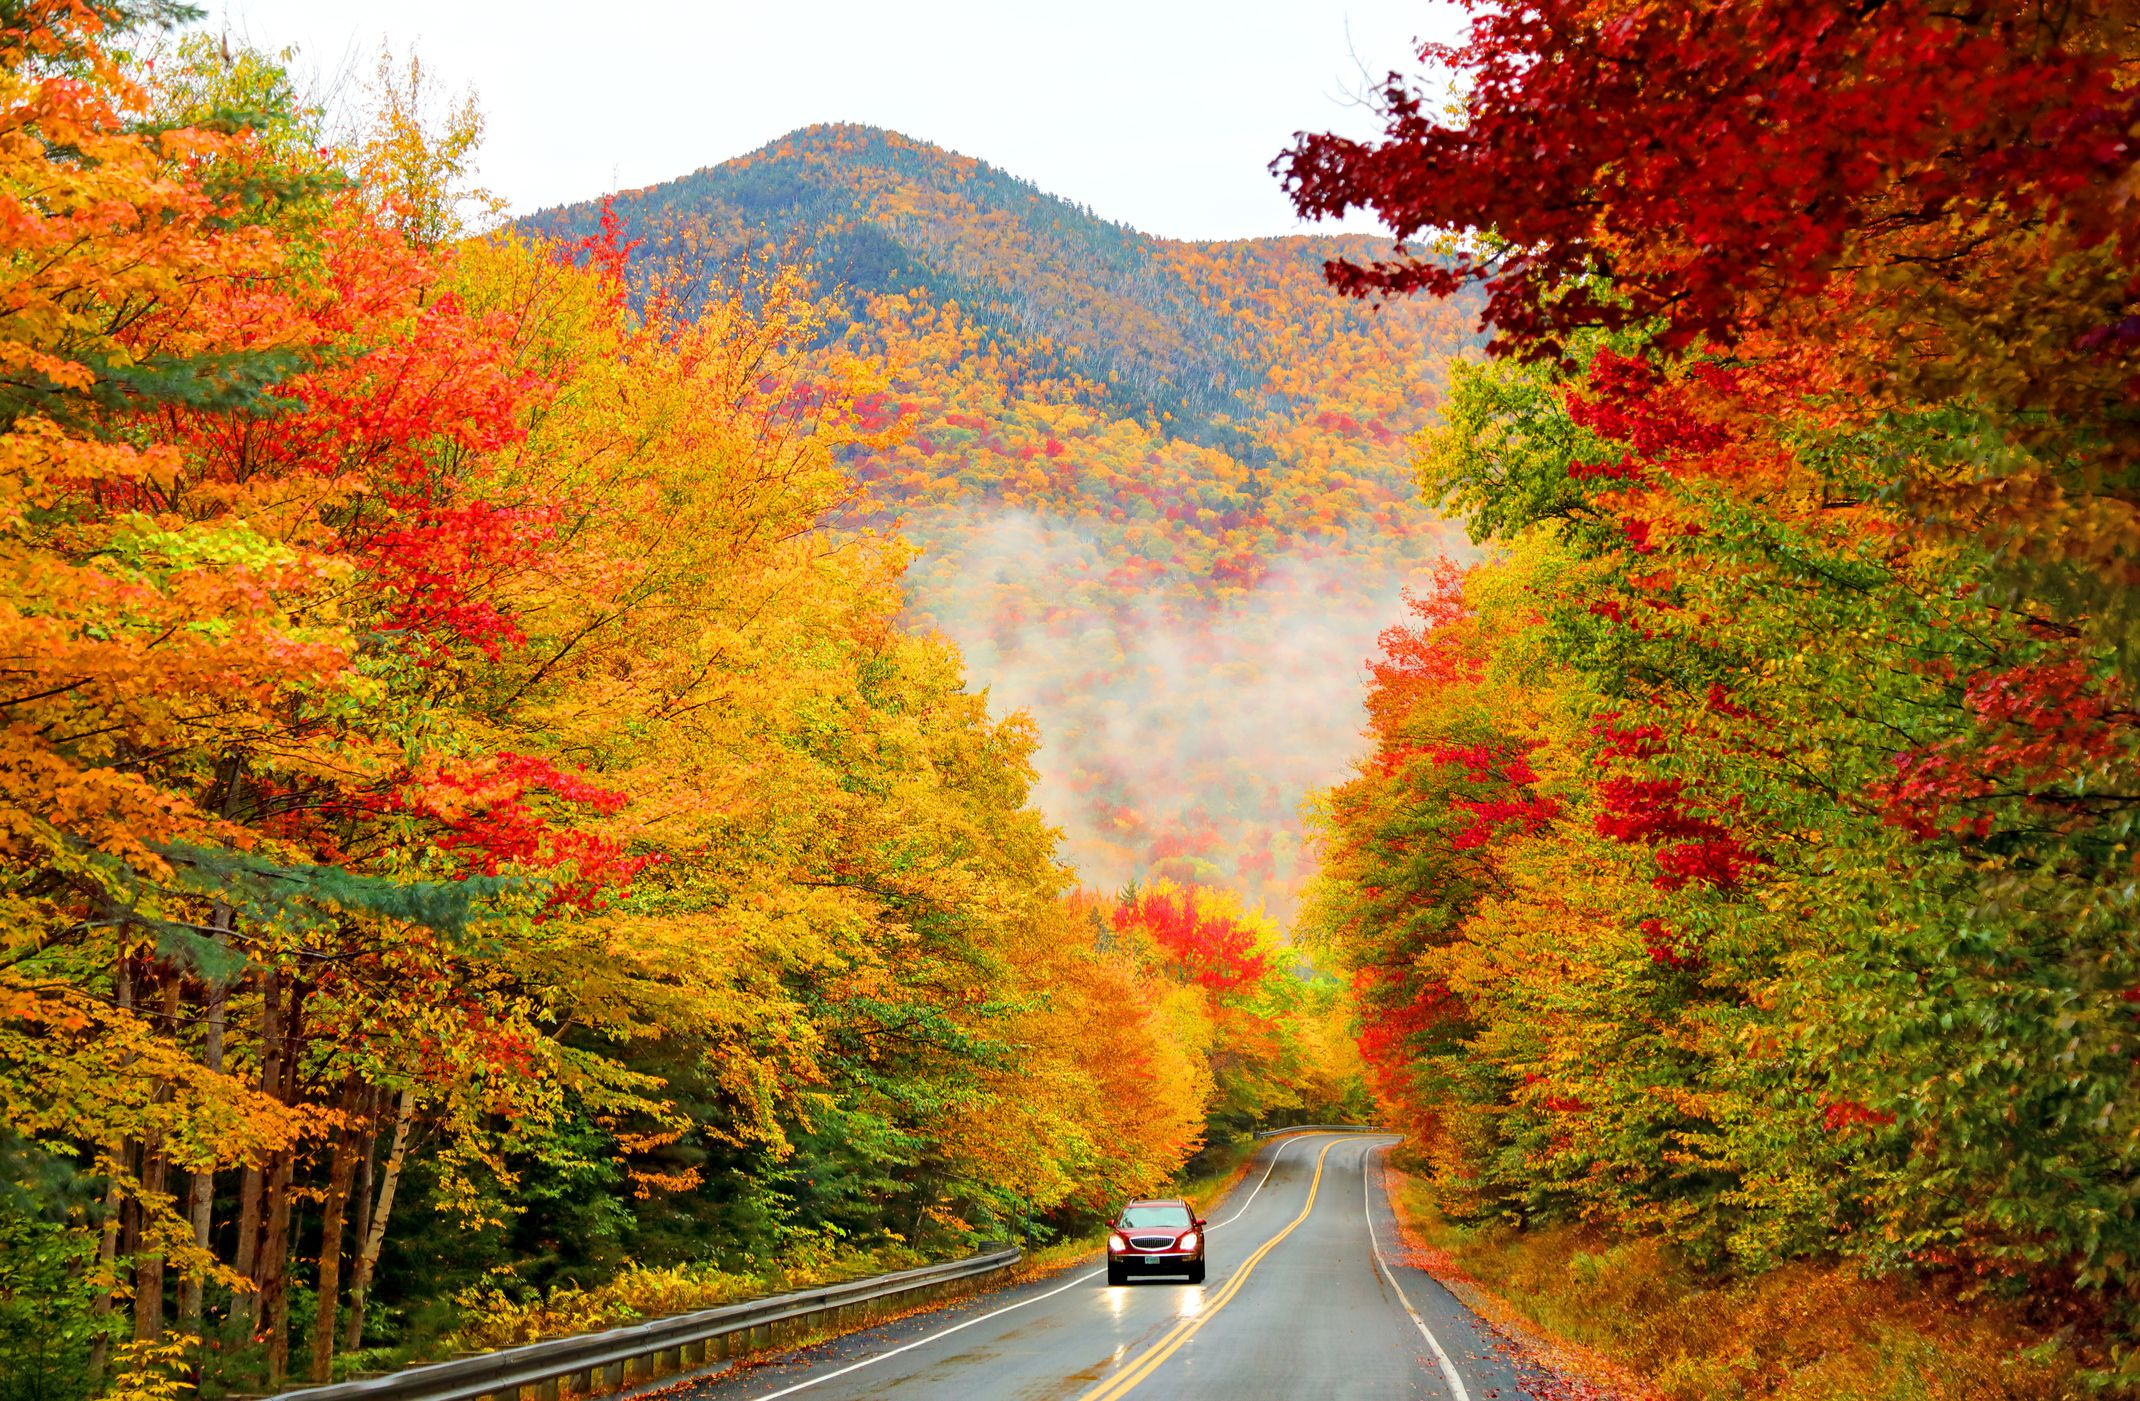 Top 10 Road Trip Routes in the Northeastern U.S.